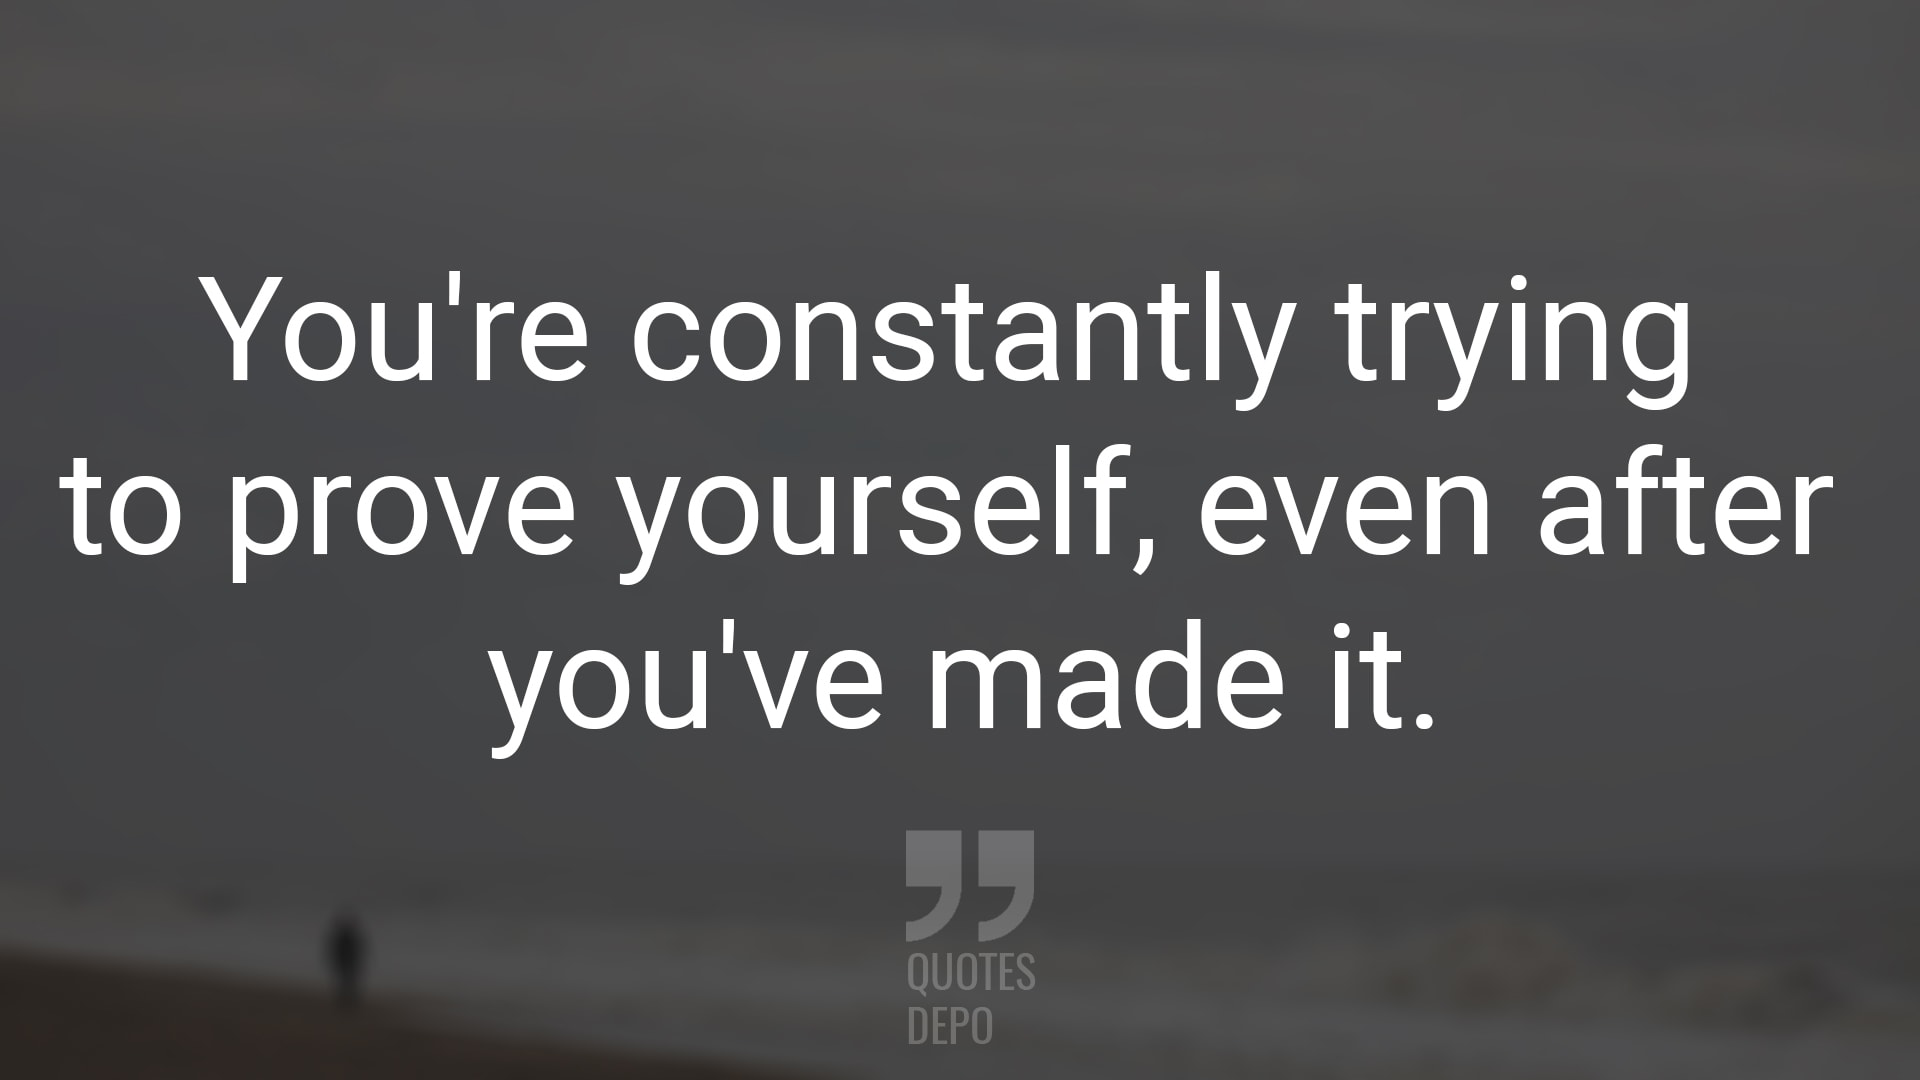 You're Constantly Trying to Prove Yourself